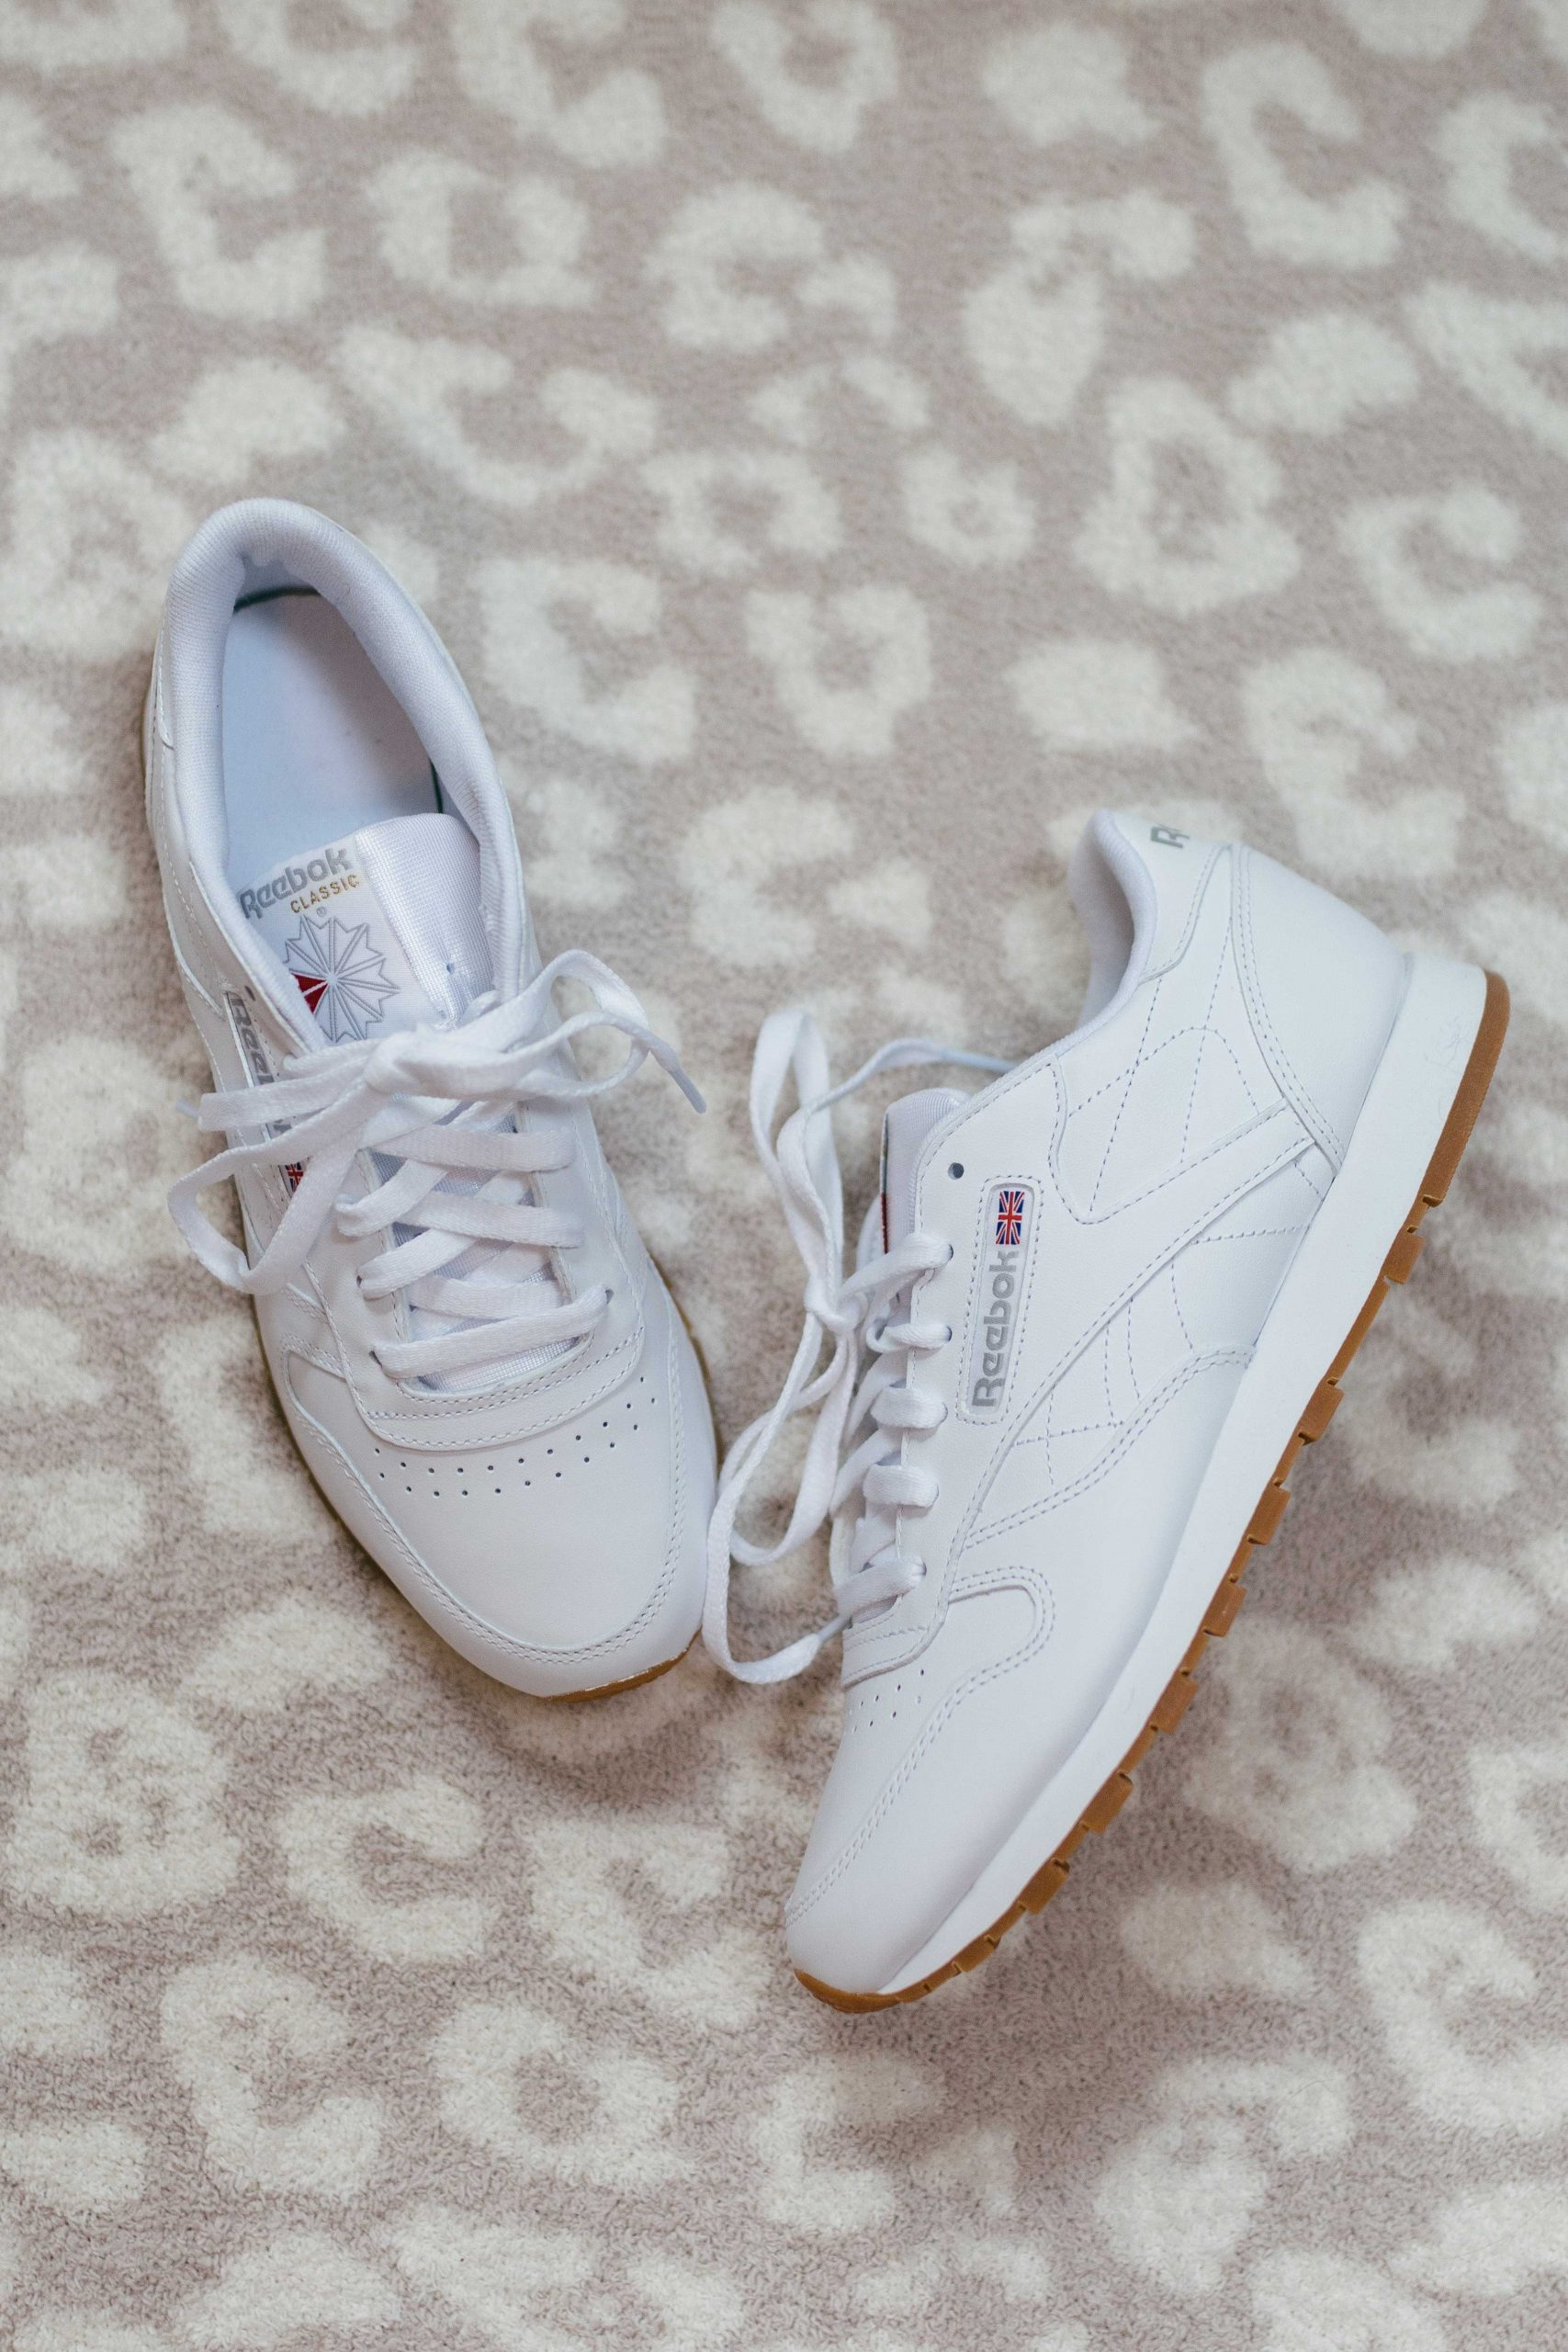 Virginia blogger, Lauren Dix, tries on 10 different pairs of white sneakers for the ultimate white sneaker review! The Reebok Classic Leather sneaker pictured here are included!